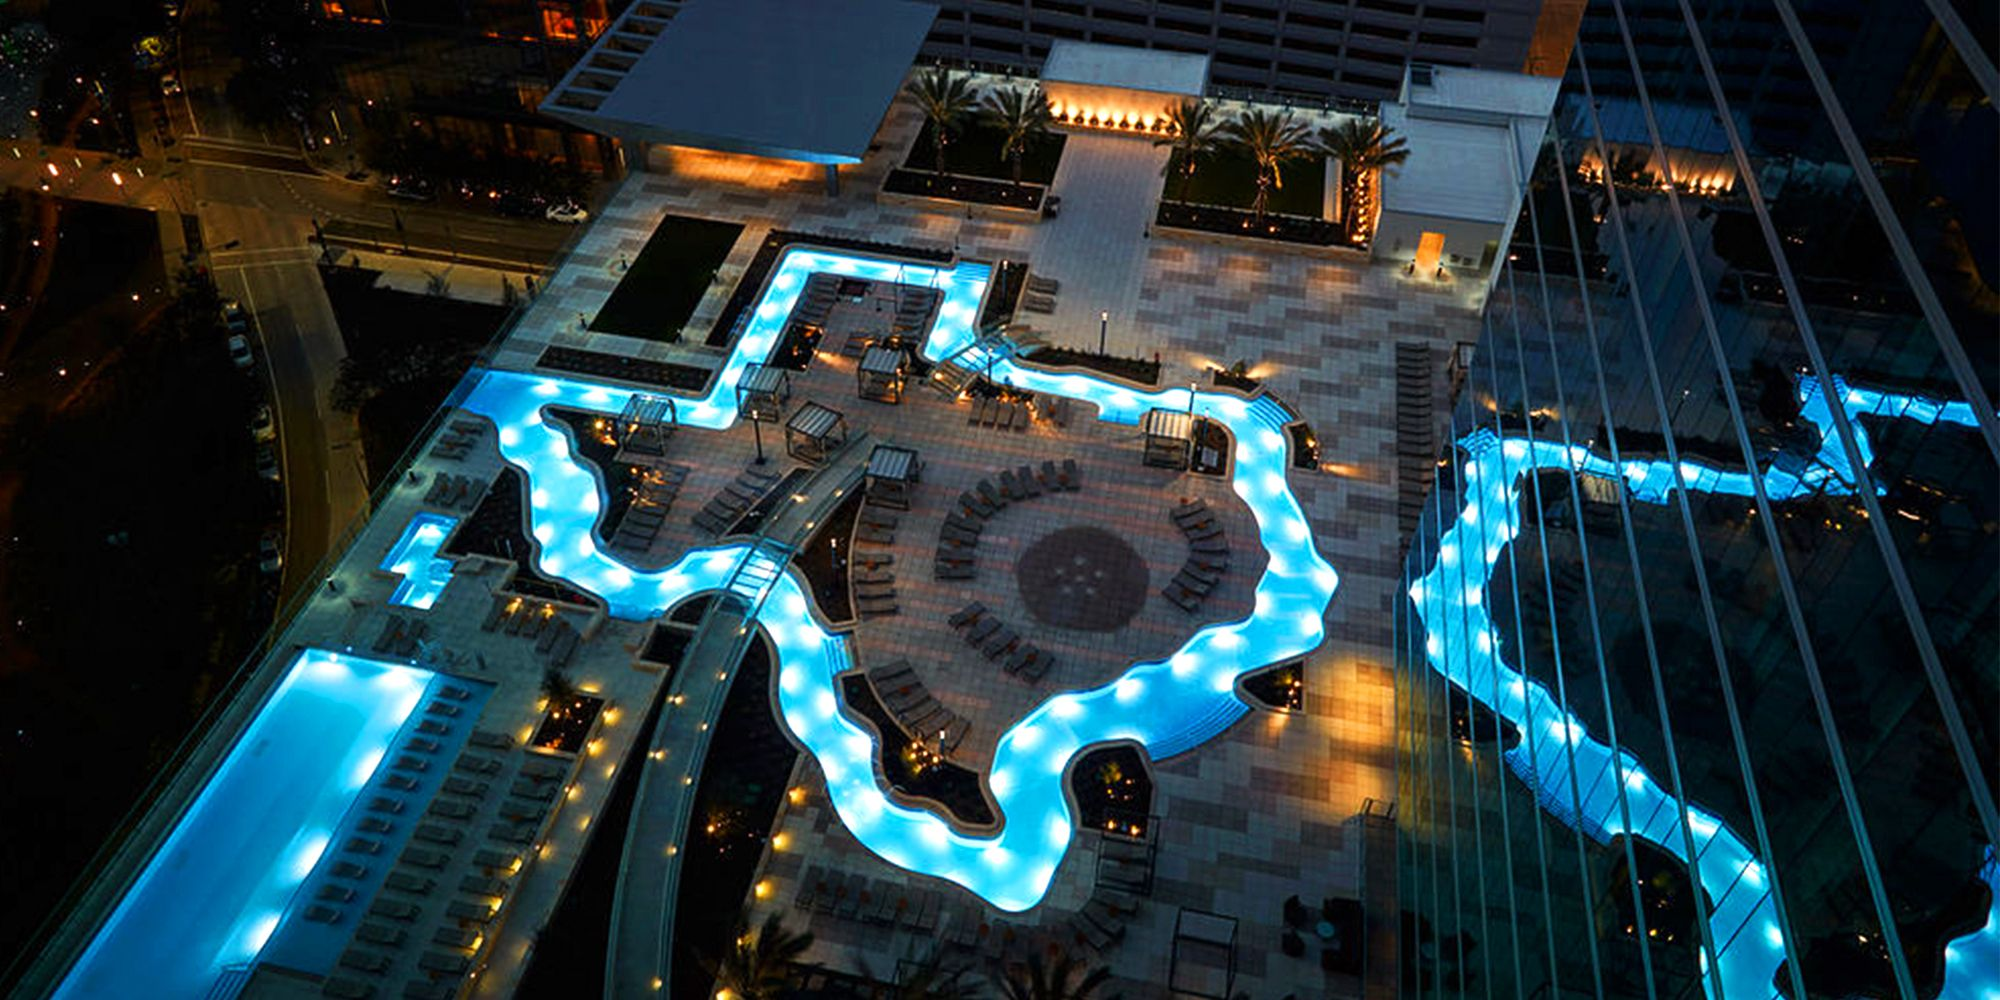 20 Best Things to Do in Houston Right Now - Fun Attractions ...